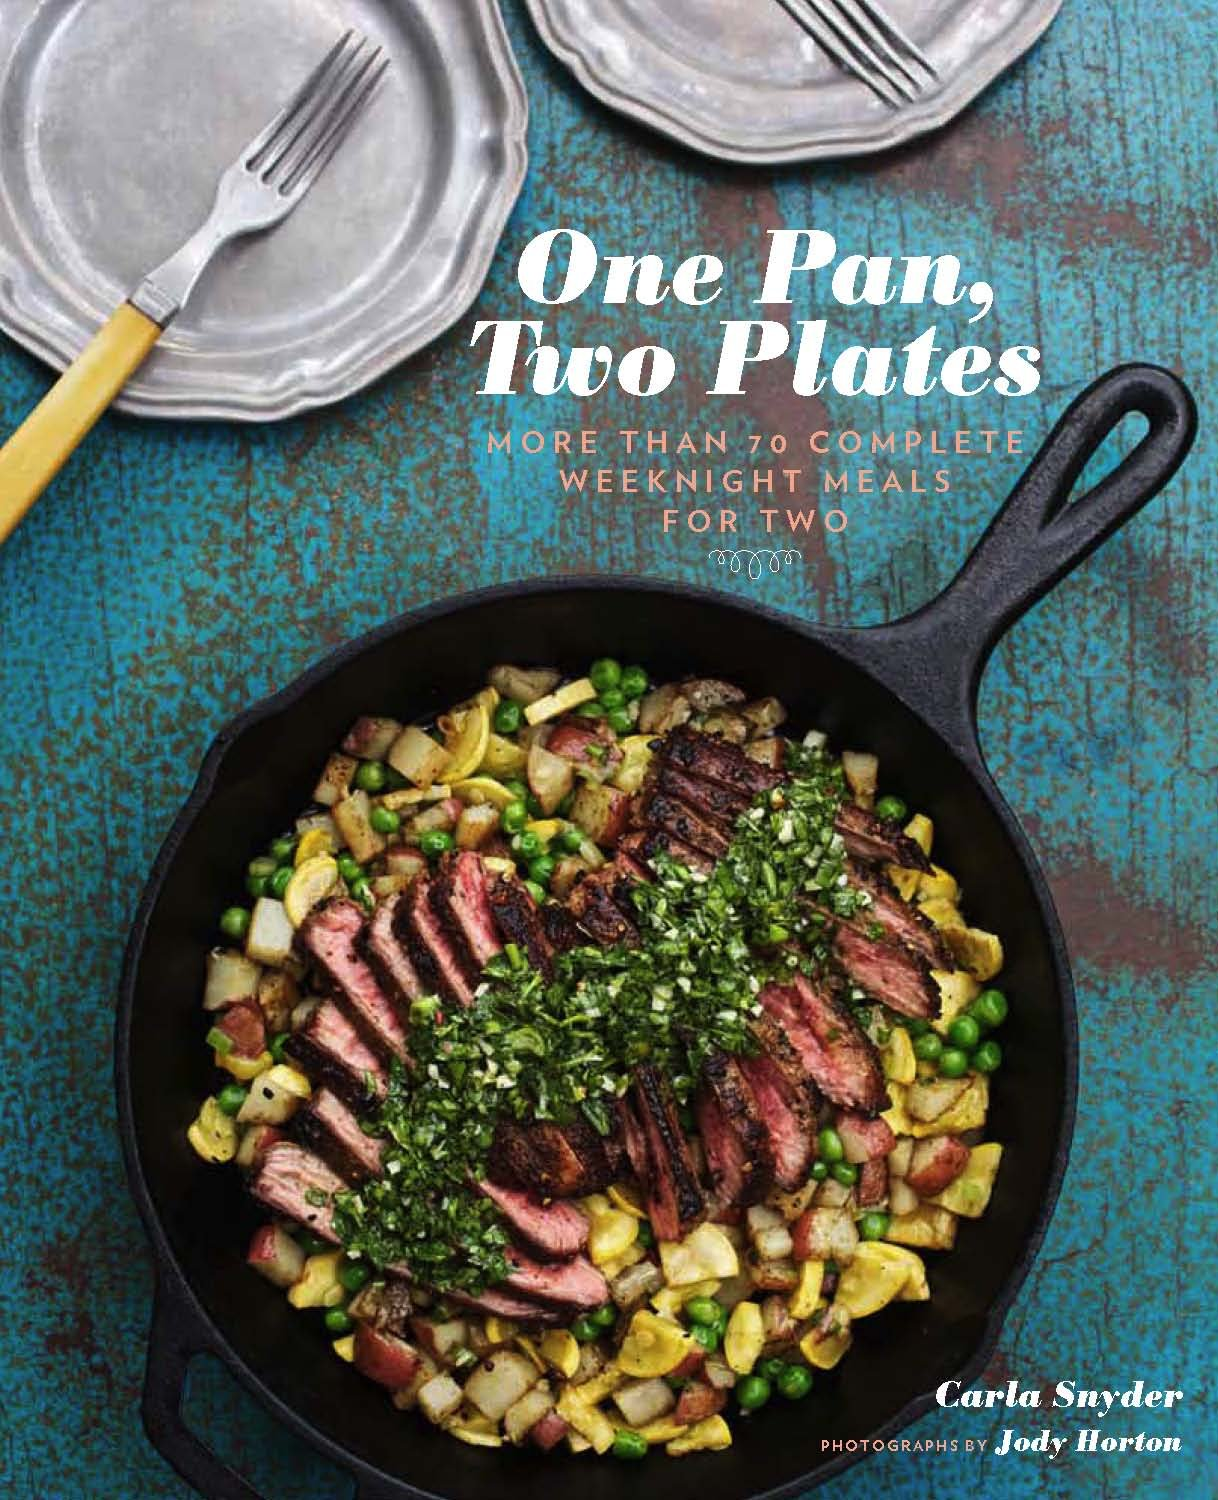 One Pan Two Plates More Than 70 Complete Weeknight Meals For Two